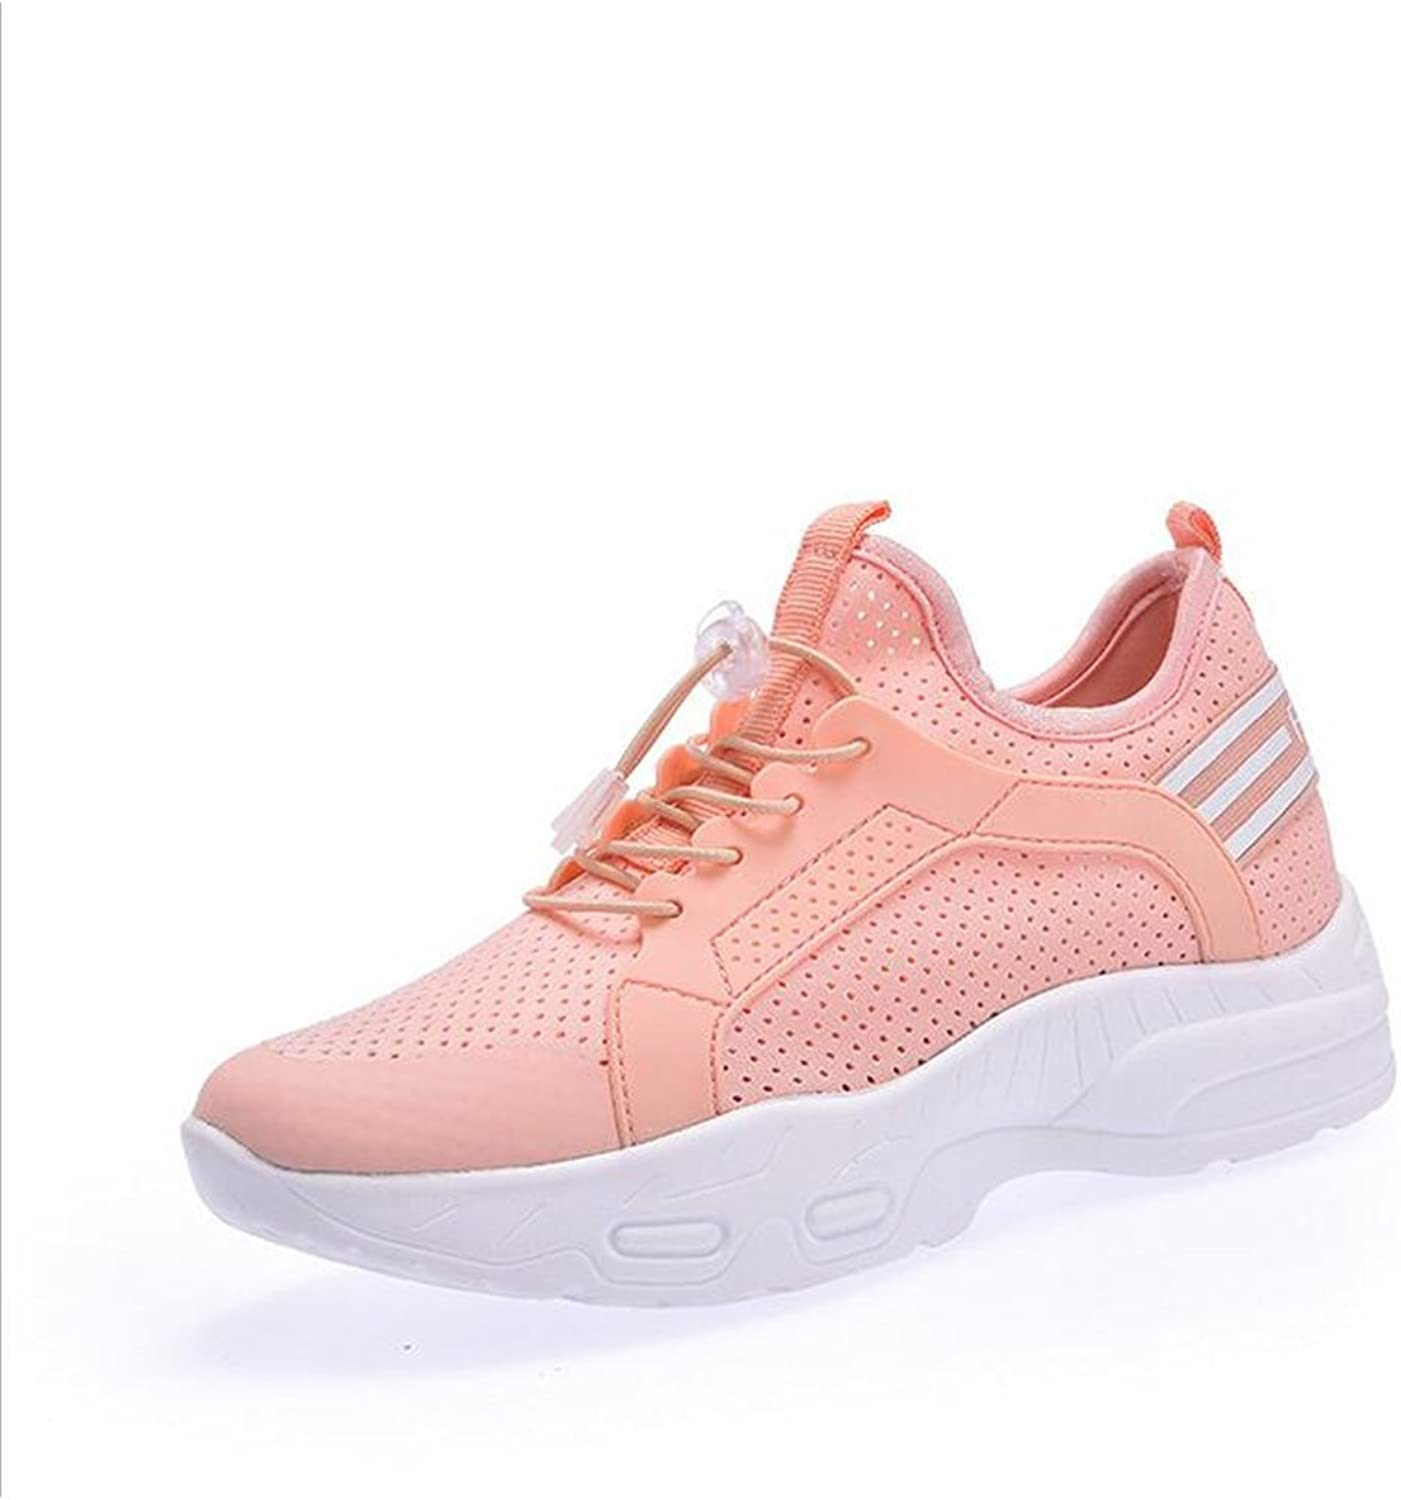 Exing Womens's shoes Summer Fall New Ladies Invisible Increase shoes,Athletic Mesh Breathable Casual shoes,Wild Lace-up Athletic shoes